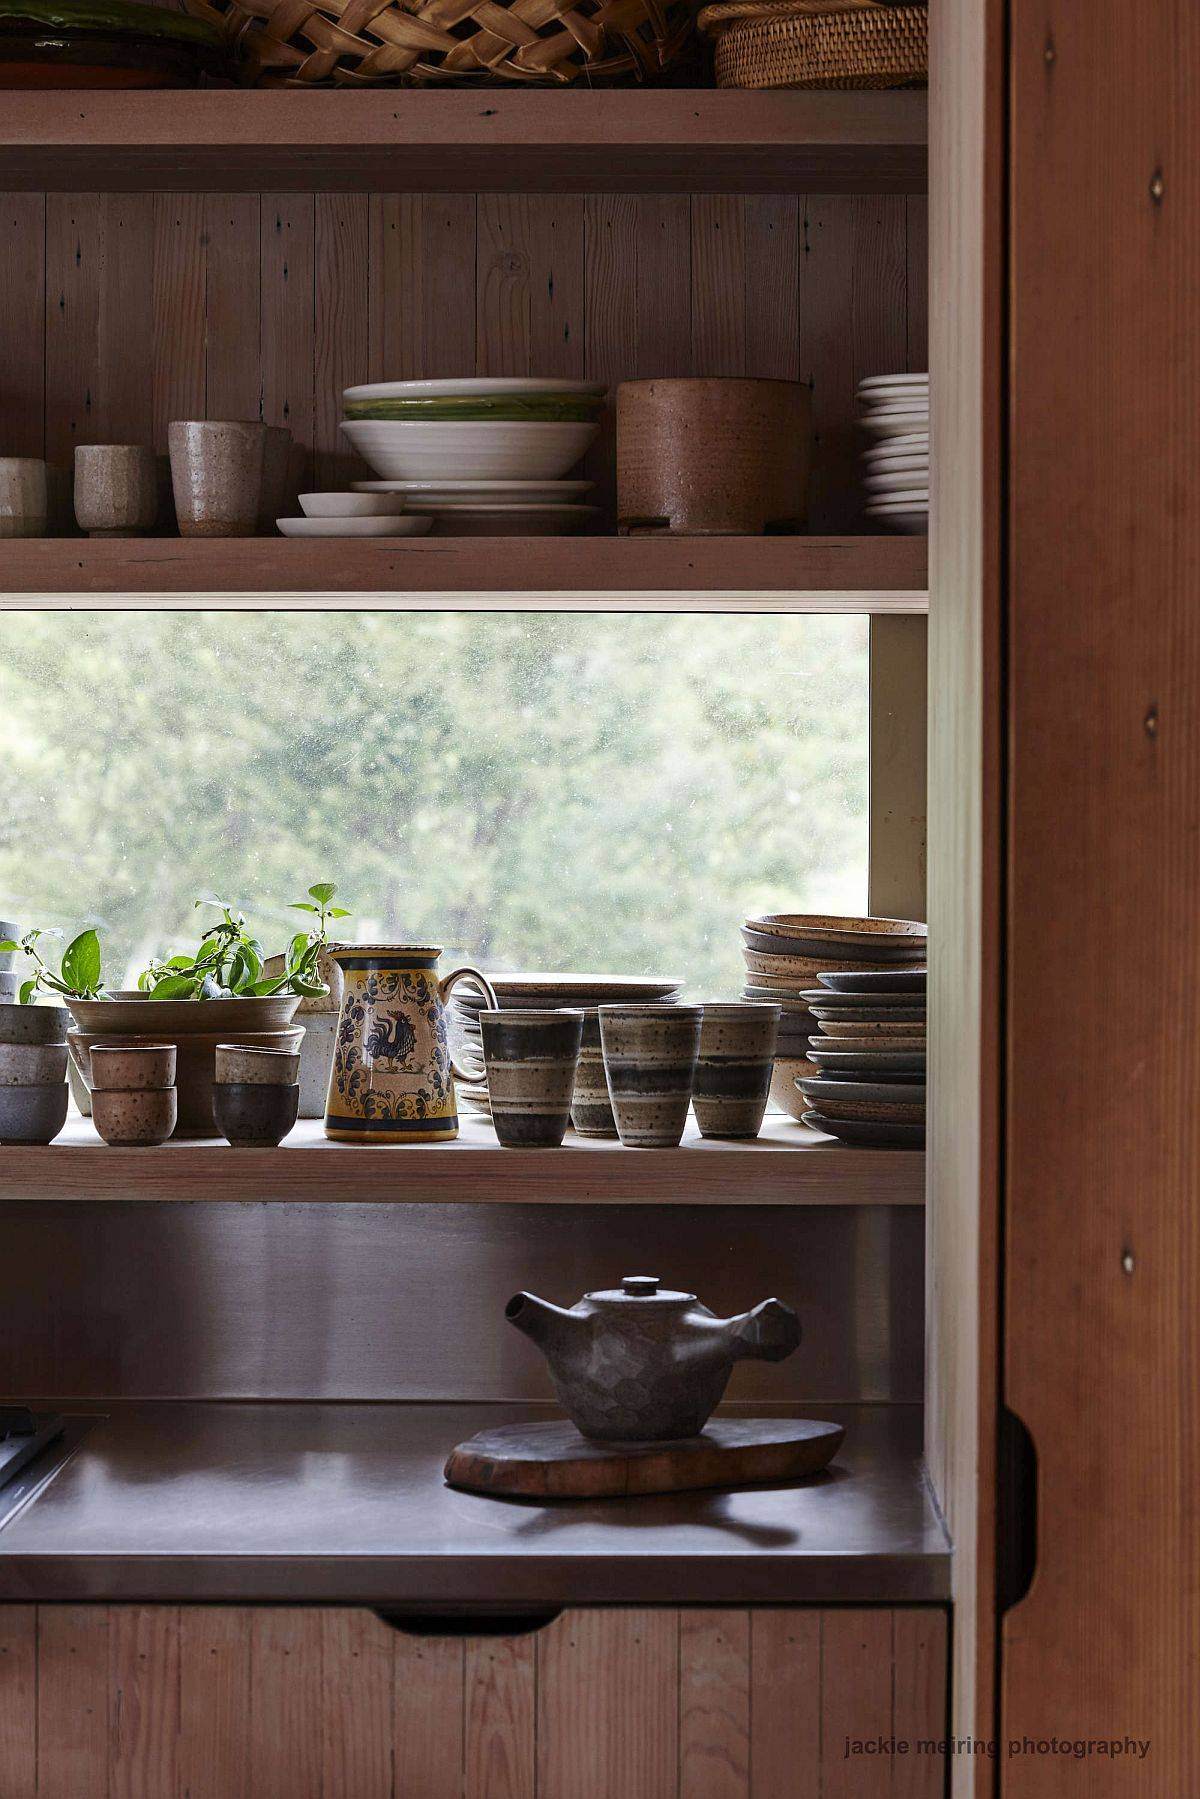 Decorating-the-kitchen-shelf-with-lovely-chinaware-43319